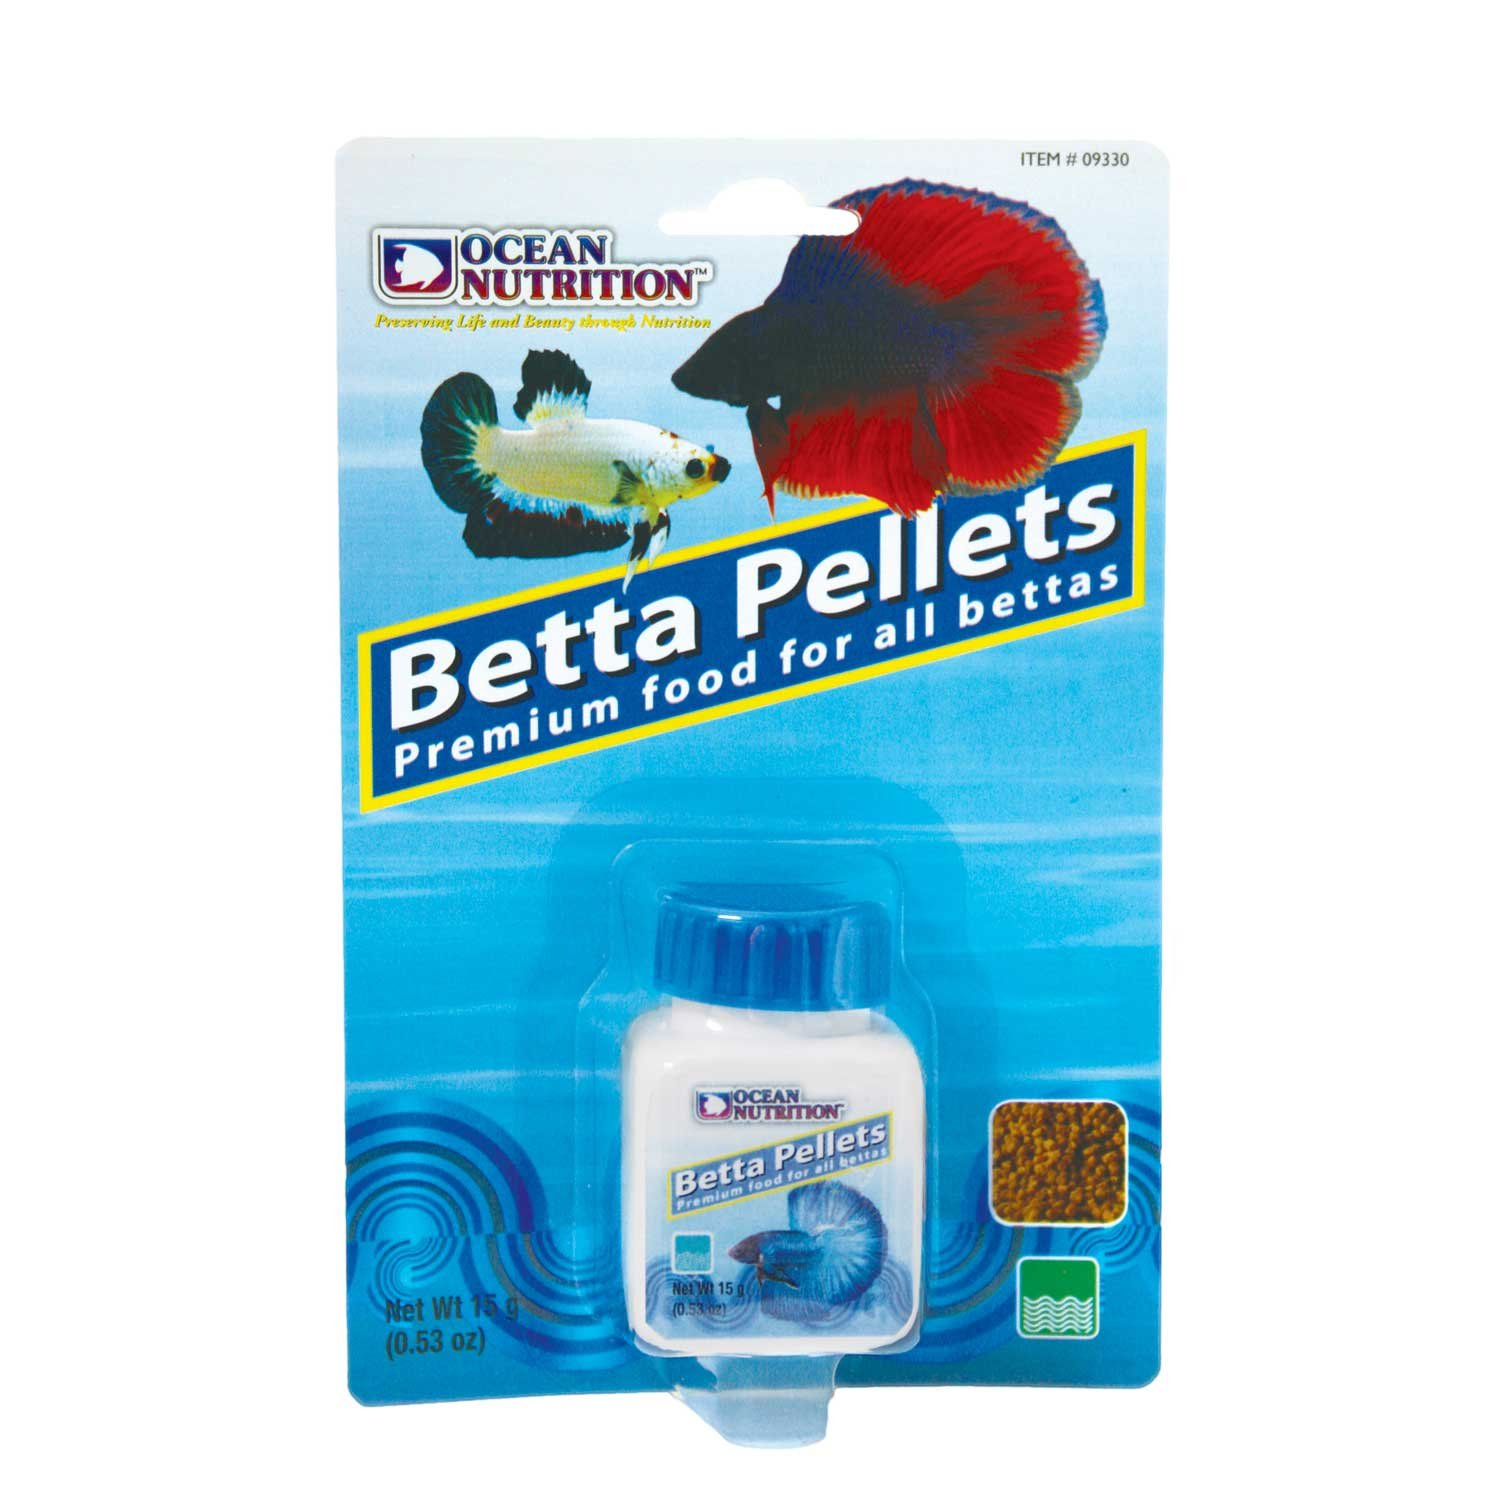 Ocean nutrition betta pellets petco for Betta fish pellets